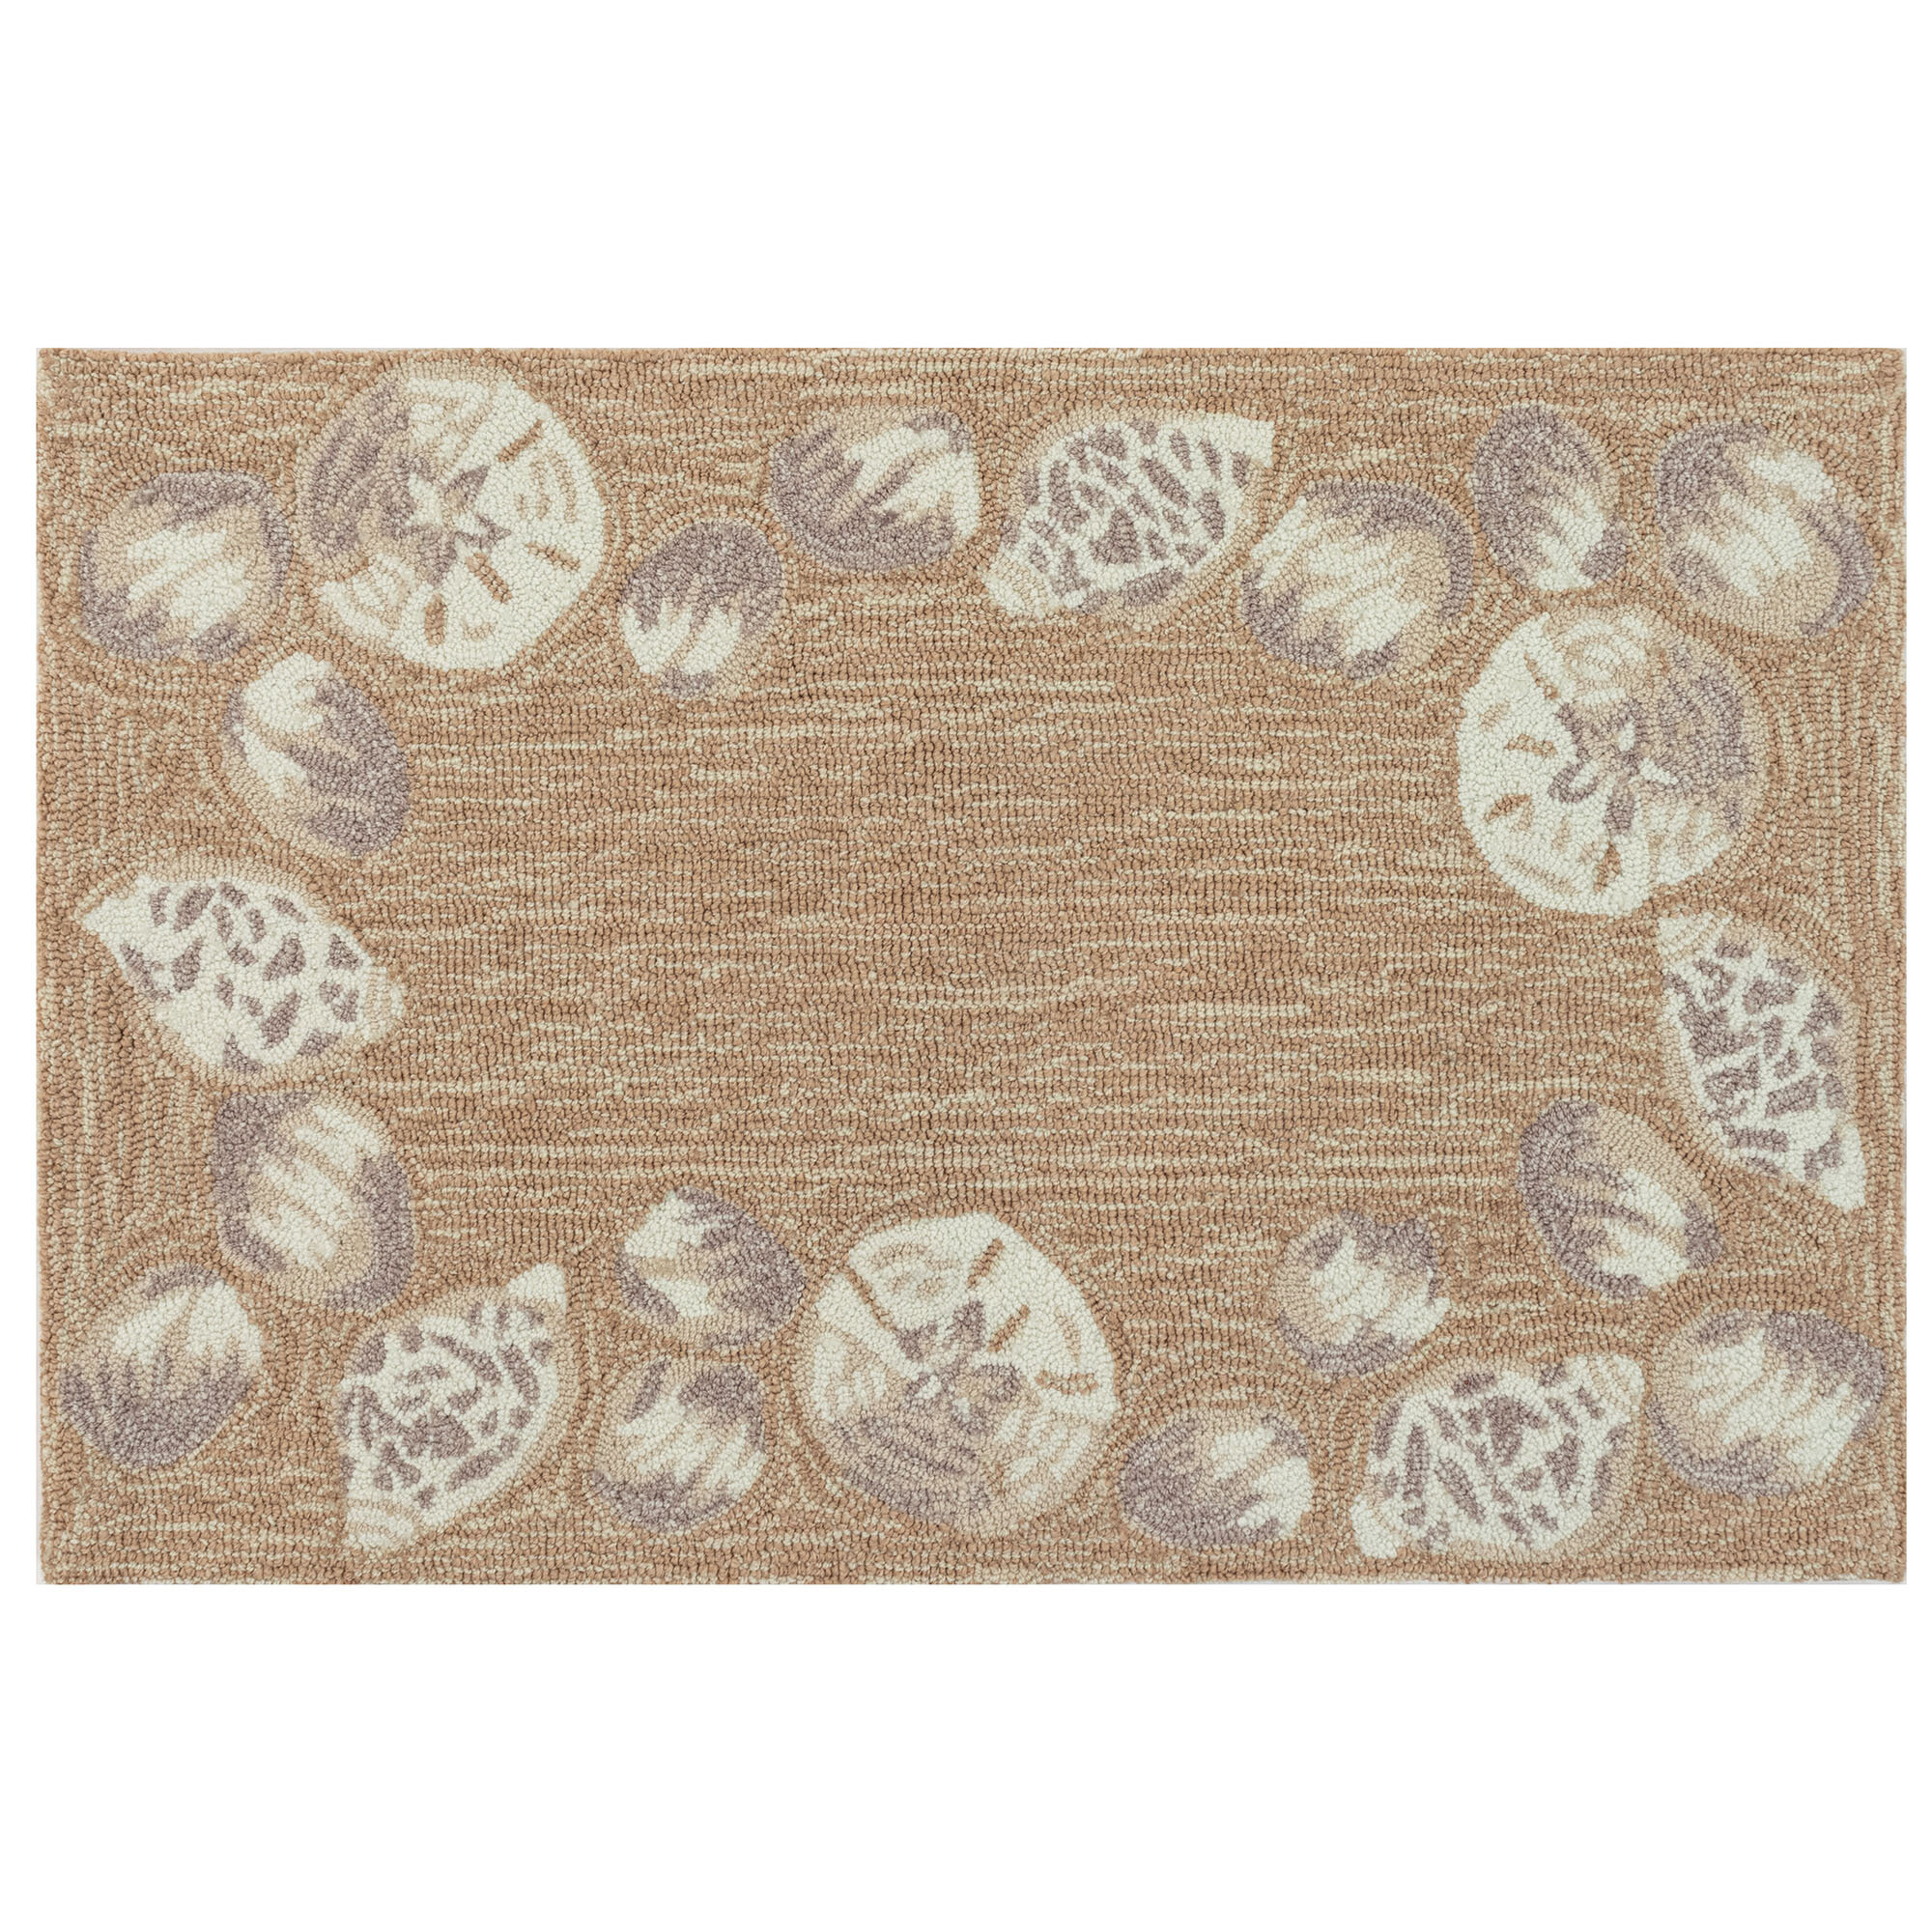 Glen Ellyn Seashell Border Indoor Outdoor Rug Natural